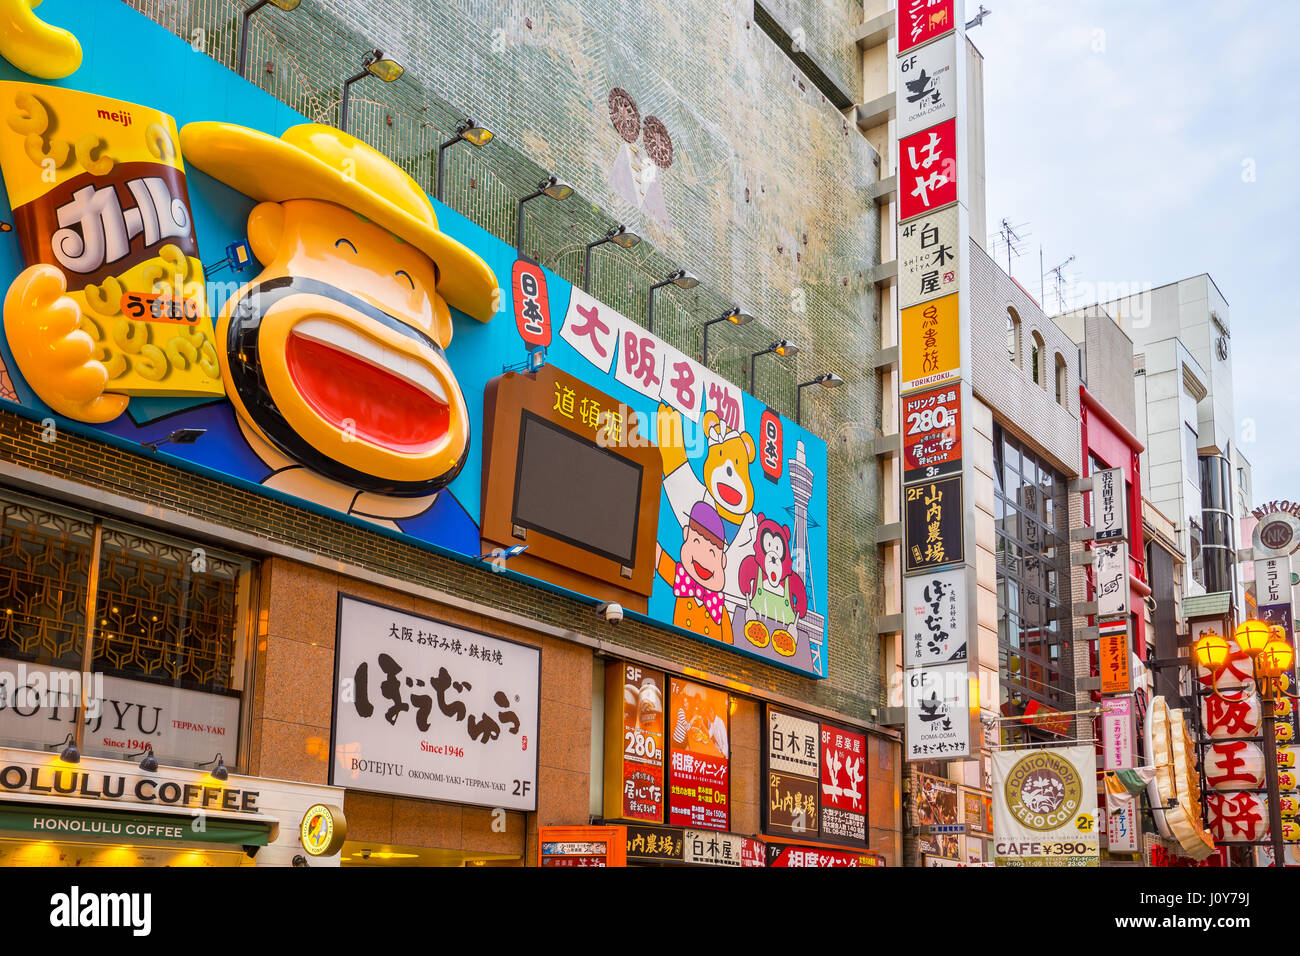 Osaka, Japon - janvier 6, 2016 : la célèbre place Dotonbori, à Osaka au Japon. Photo Stock